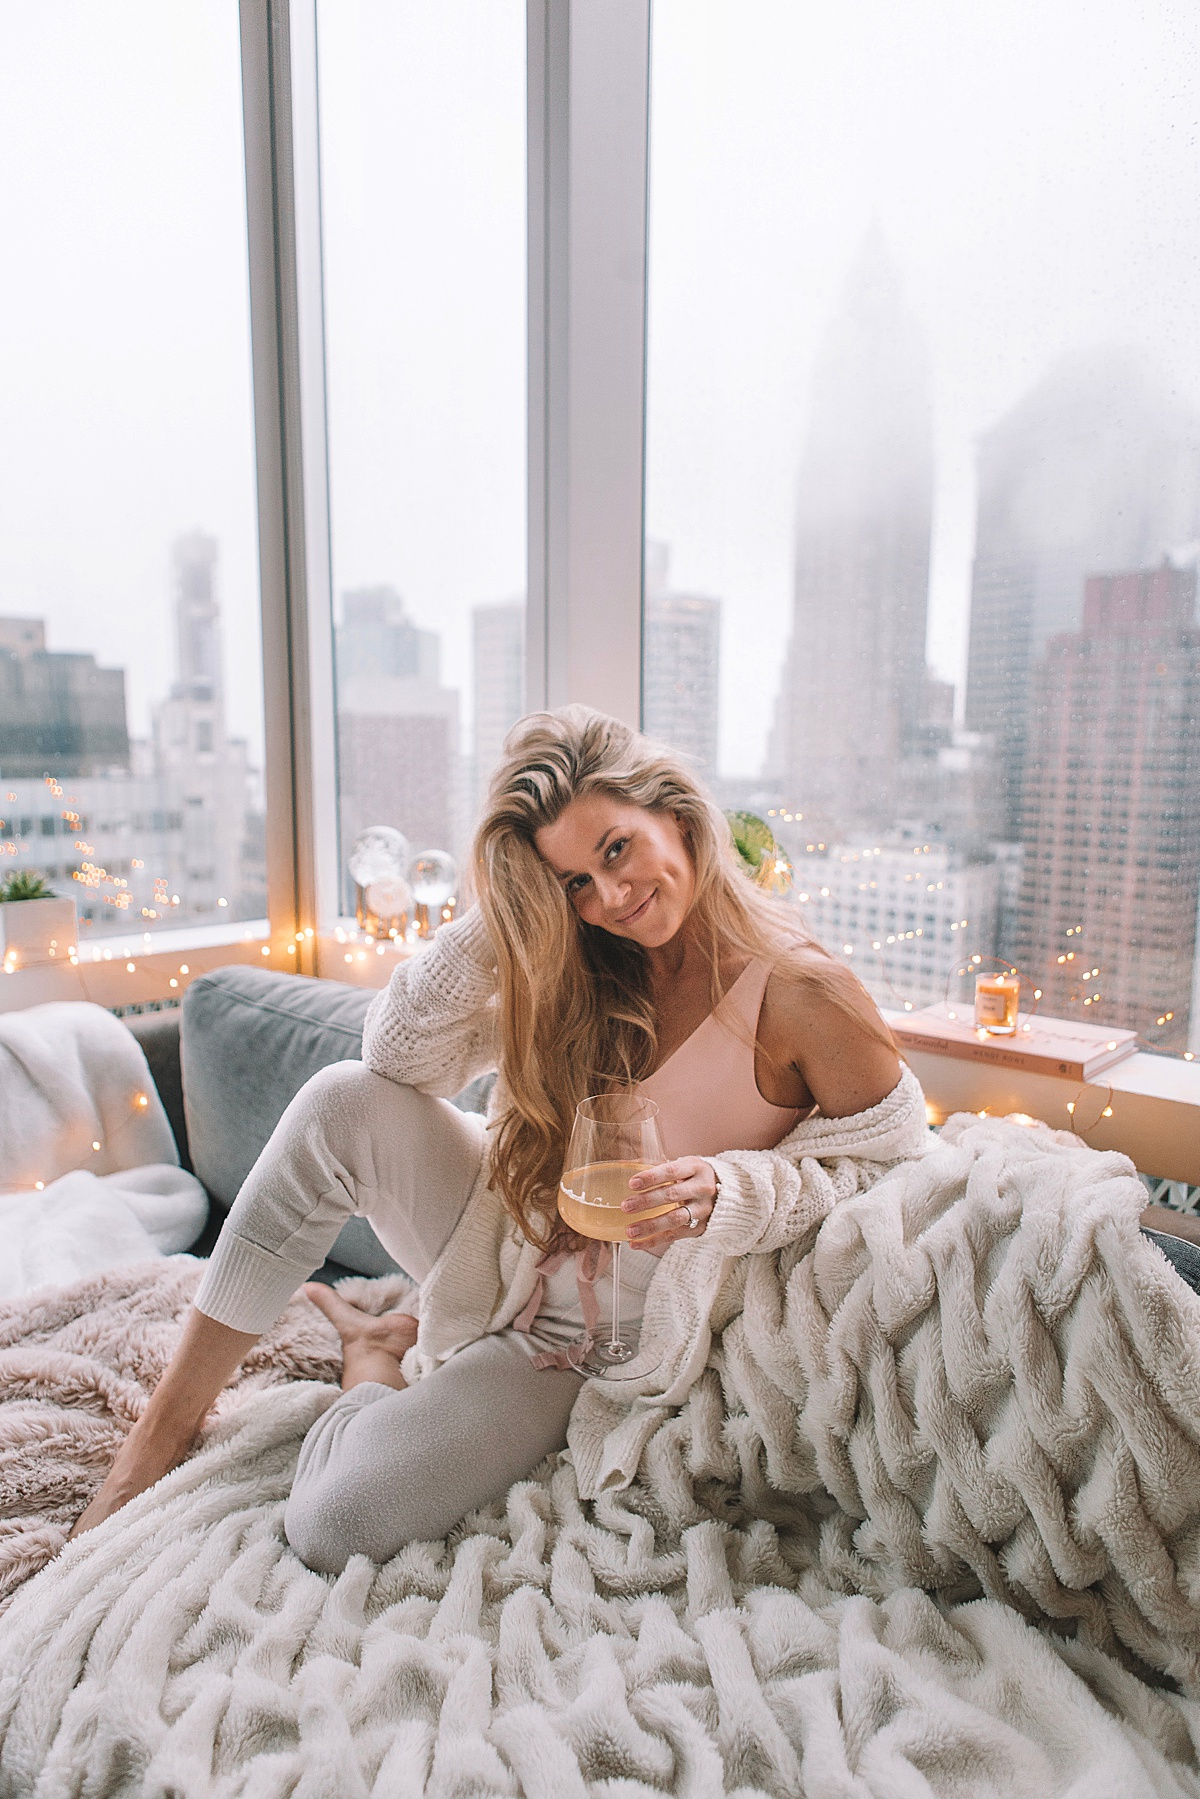 nyc apartment, social distancing, quarantine, self care blog, stay home, comfy clothes, west elm, olivia rink, olivia rink apartment, city apartment, apartment decor